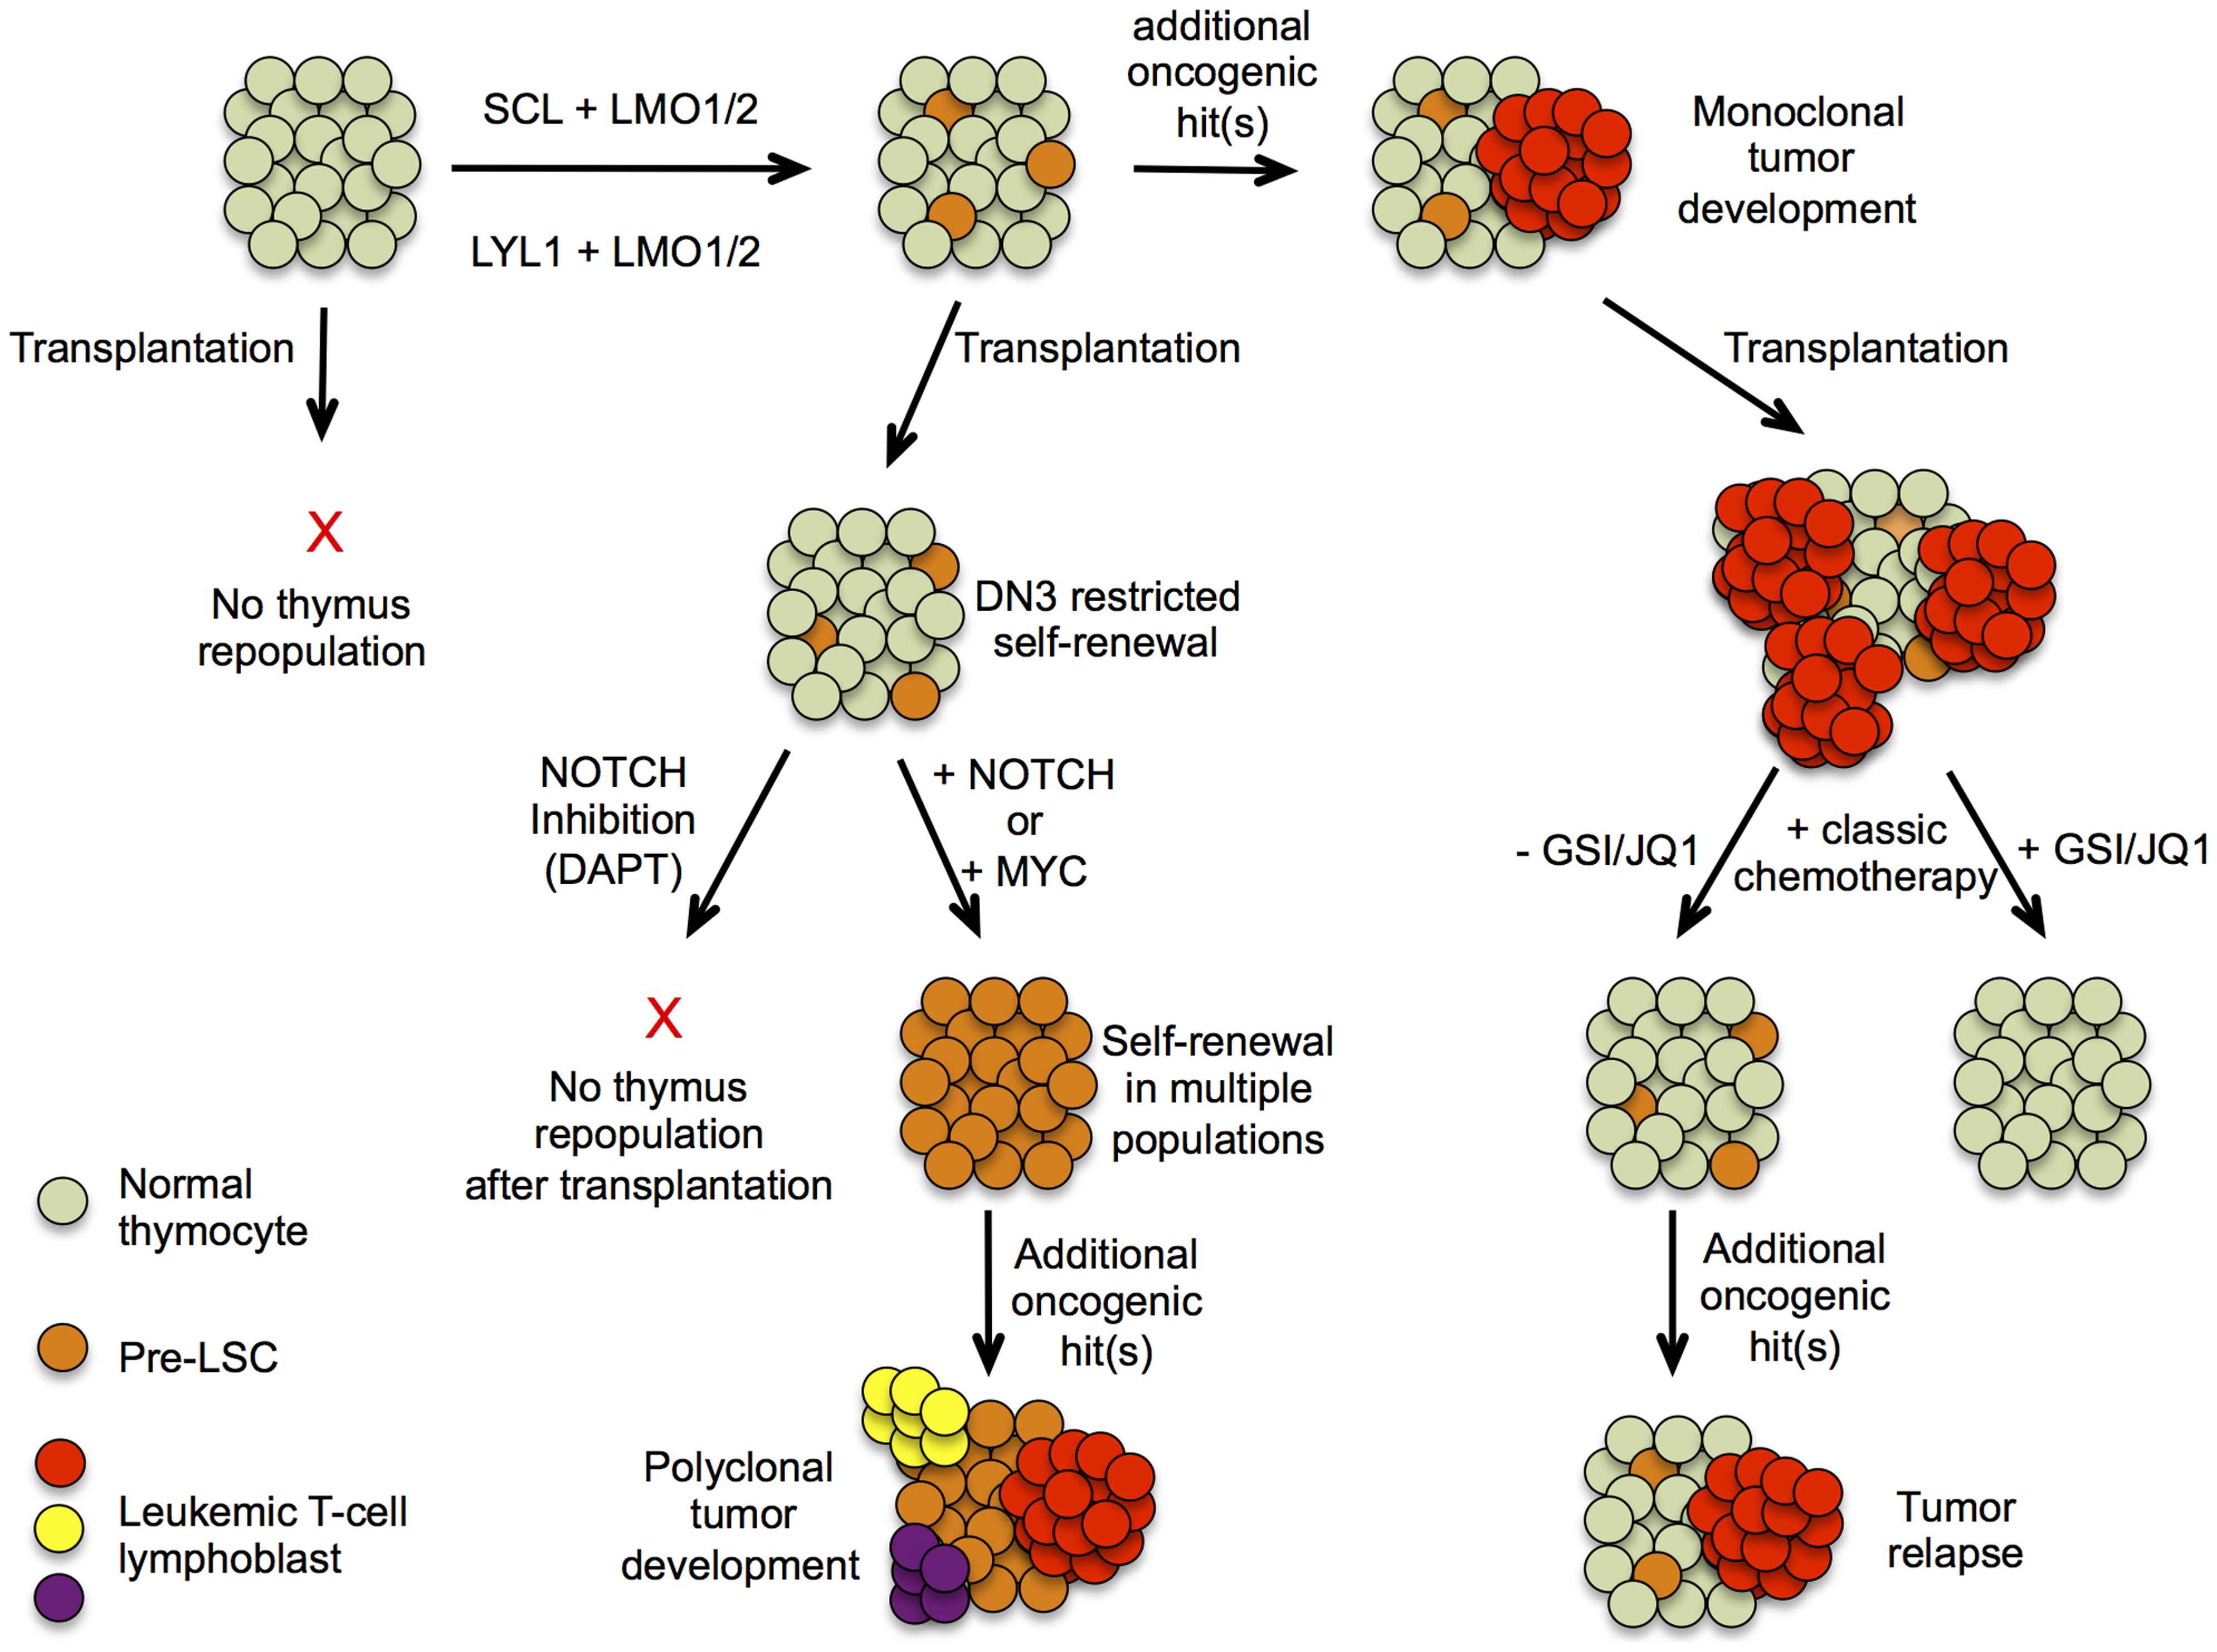 Hypothetical model describing pre-leukemic stem cells formation and T-ALL development in <i>SCL<sup>tg</sup>LMO1<sup>tg</sup></i> mice.